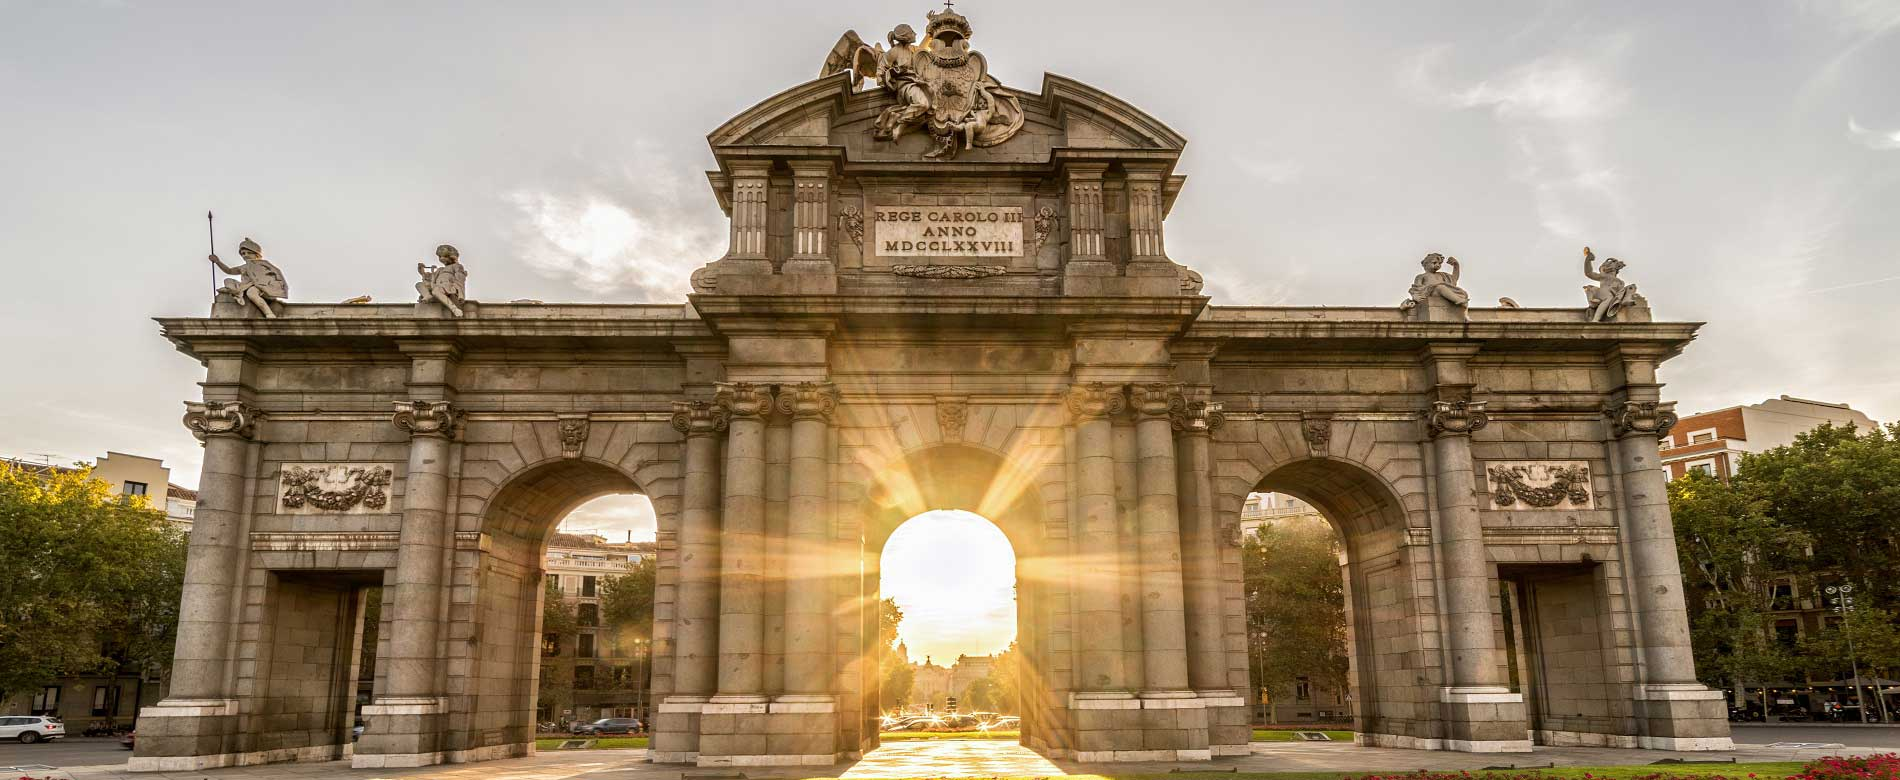 Puerta de Alcalá, surrounded by gardens and pierced by the evening sun.